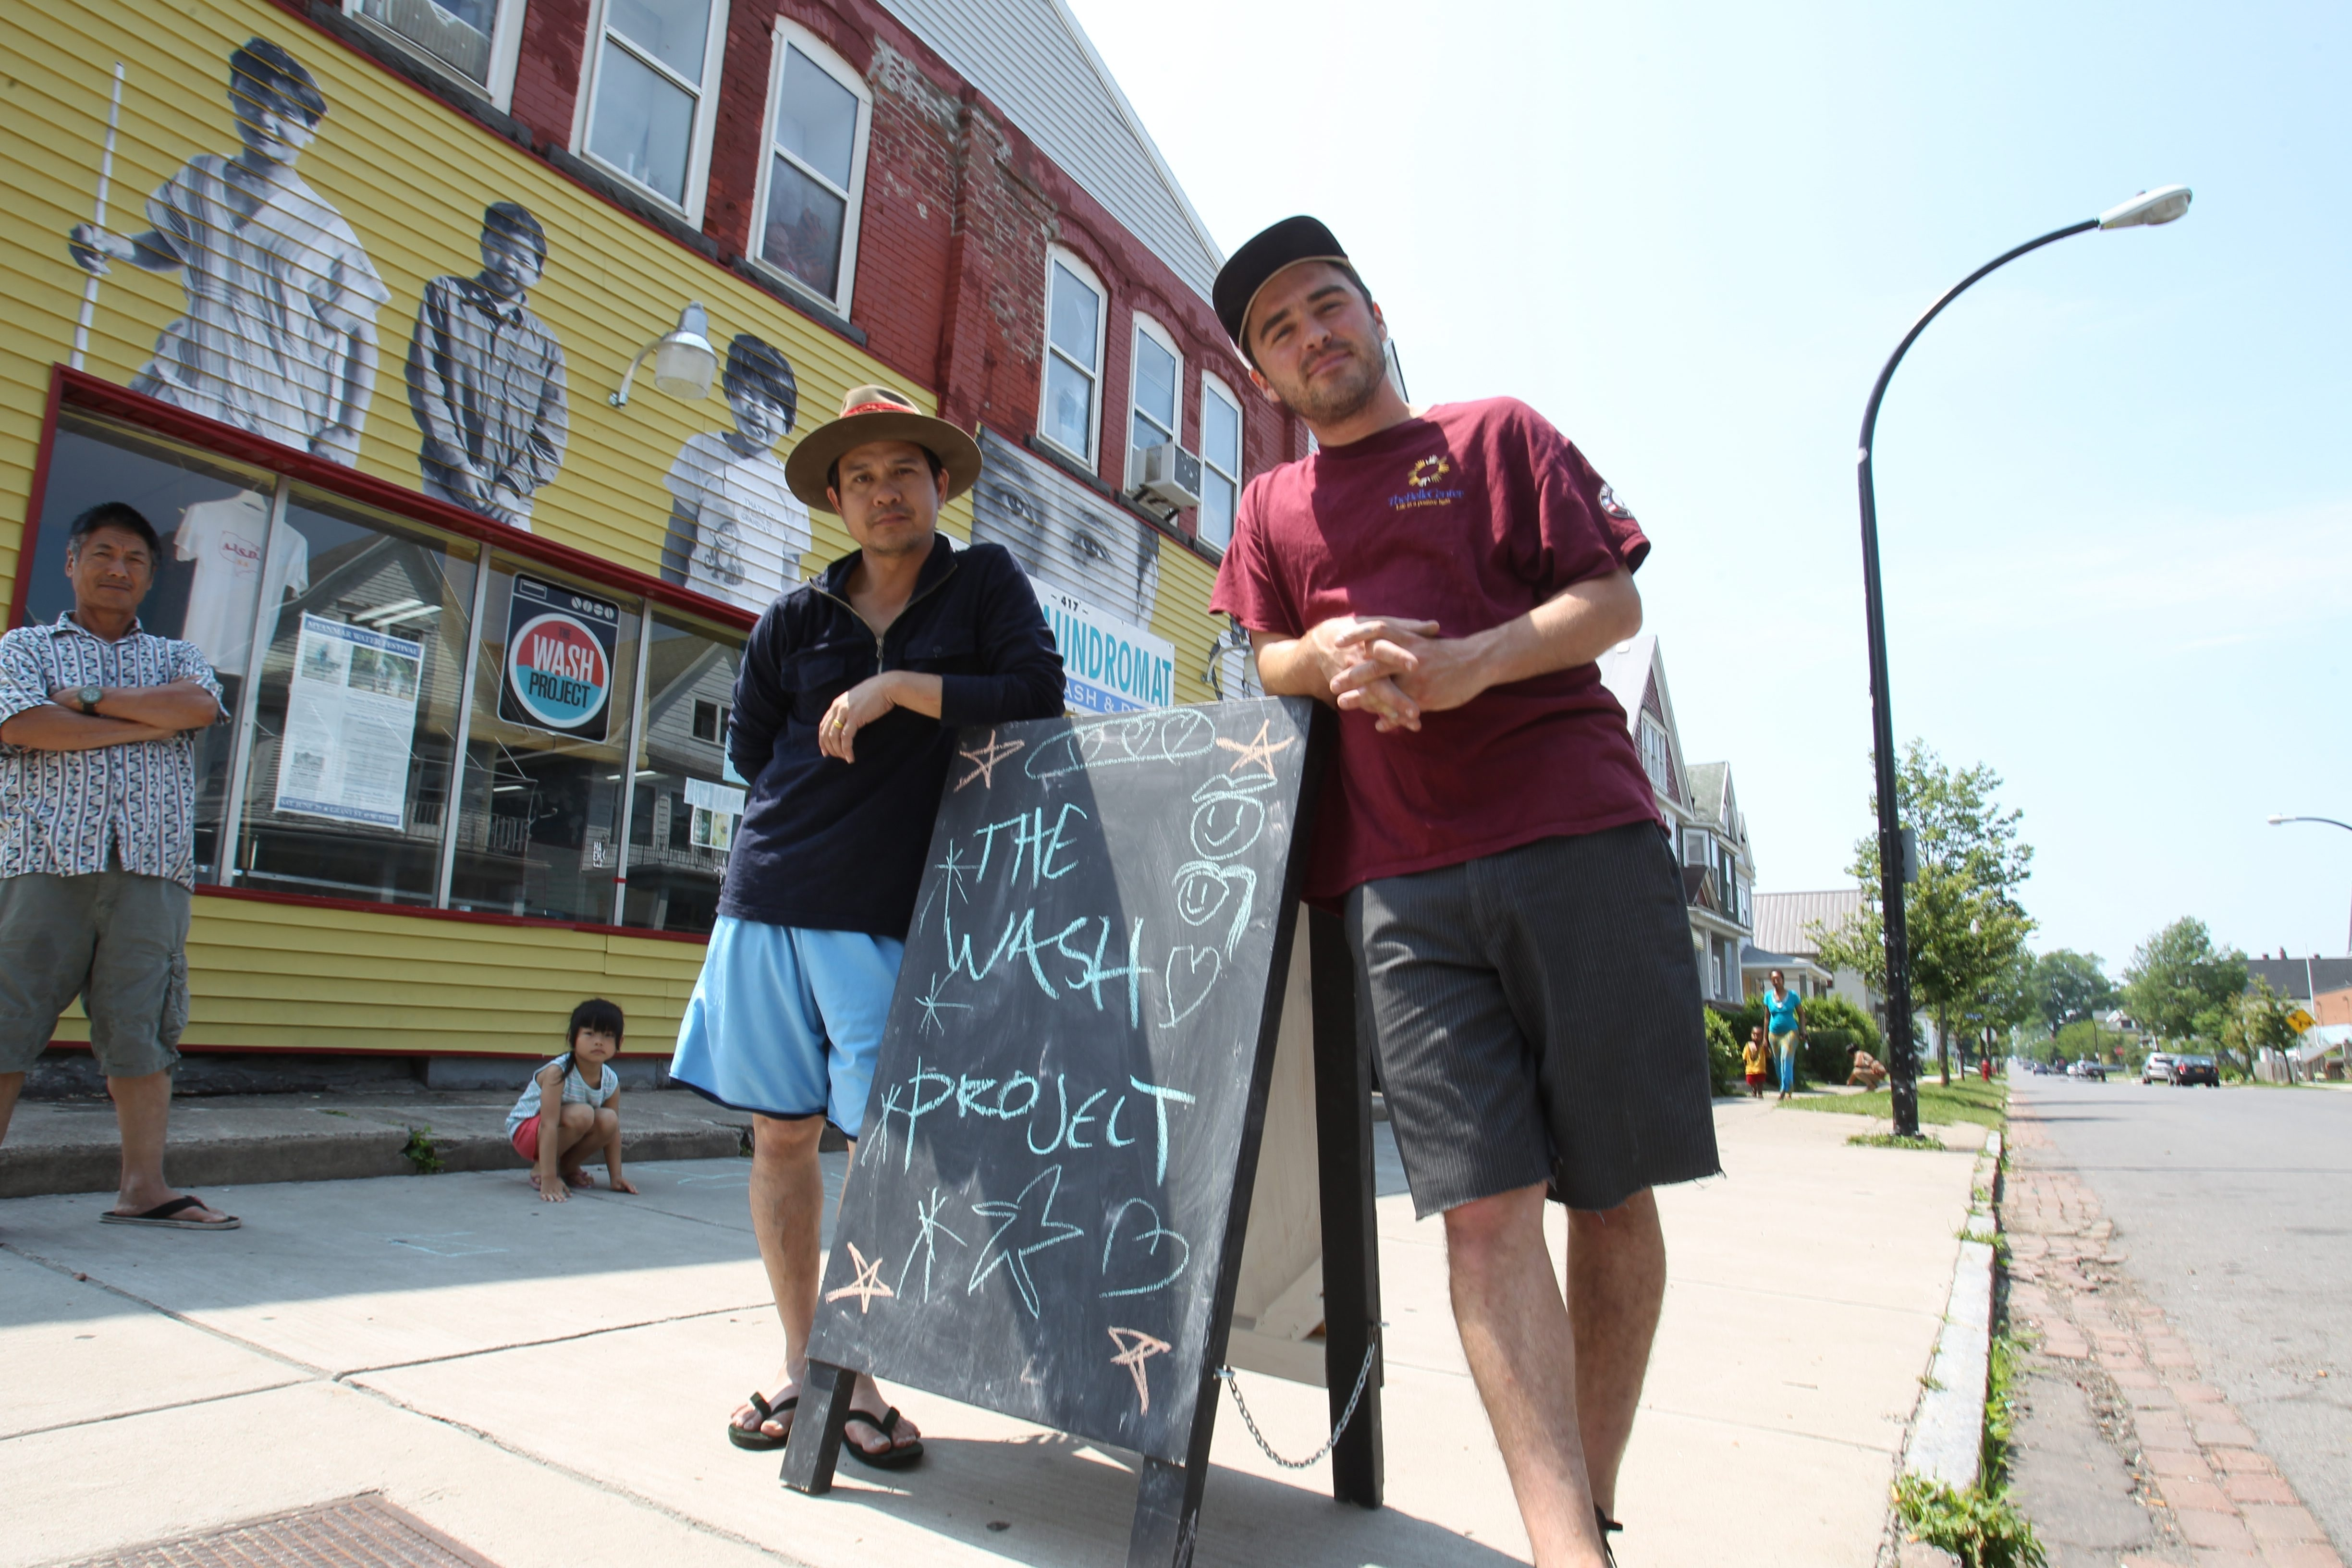 Barrett Gordon, in the red shirt, the coordinator of the WASH Project, poses with the laundromat's owner, Zaw Win, at Westside Value Laundromat on Massachusetts Avenue in Buffalo on June 24.